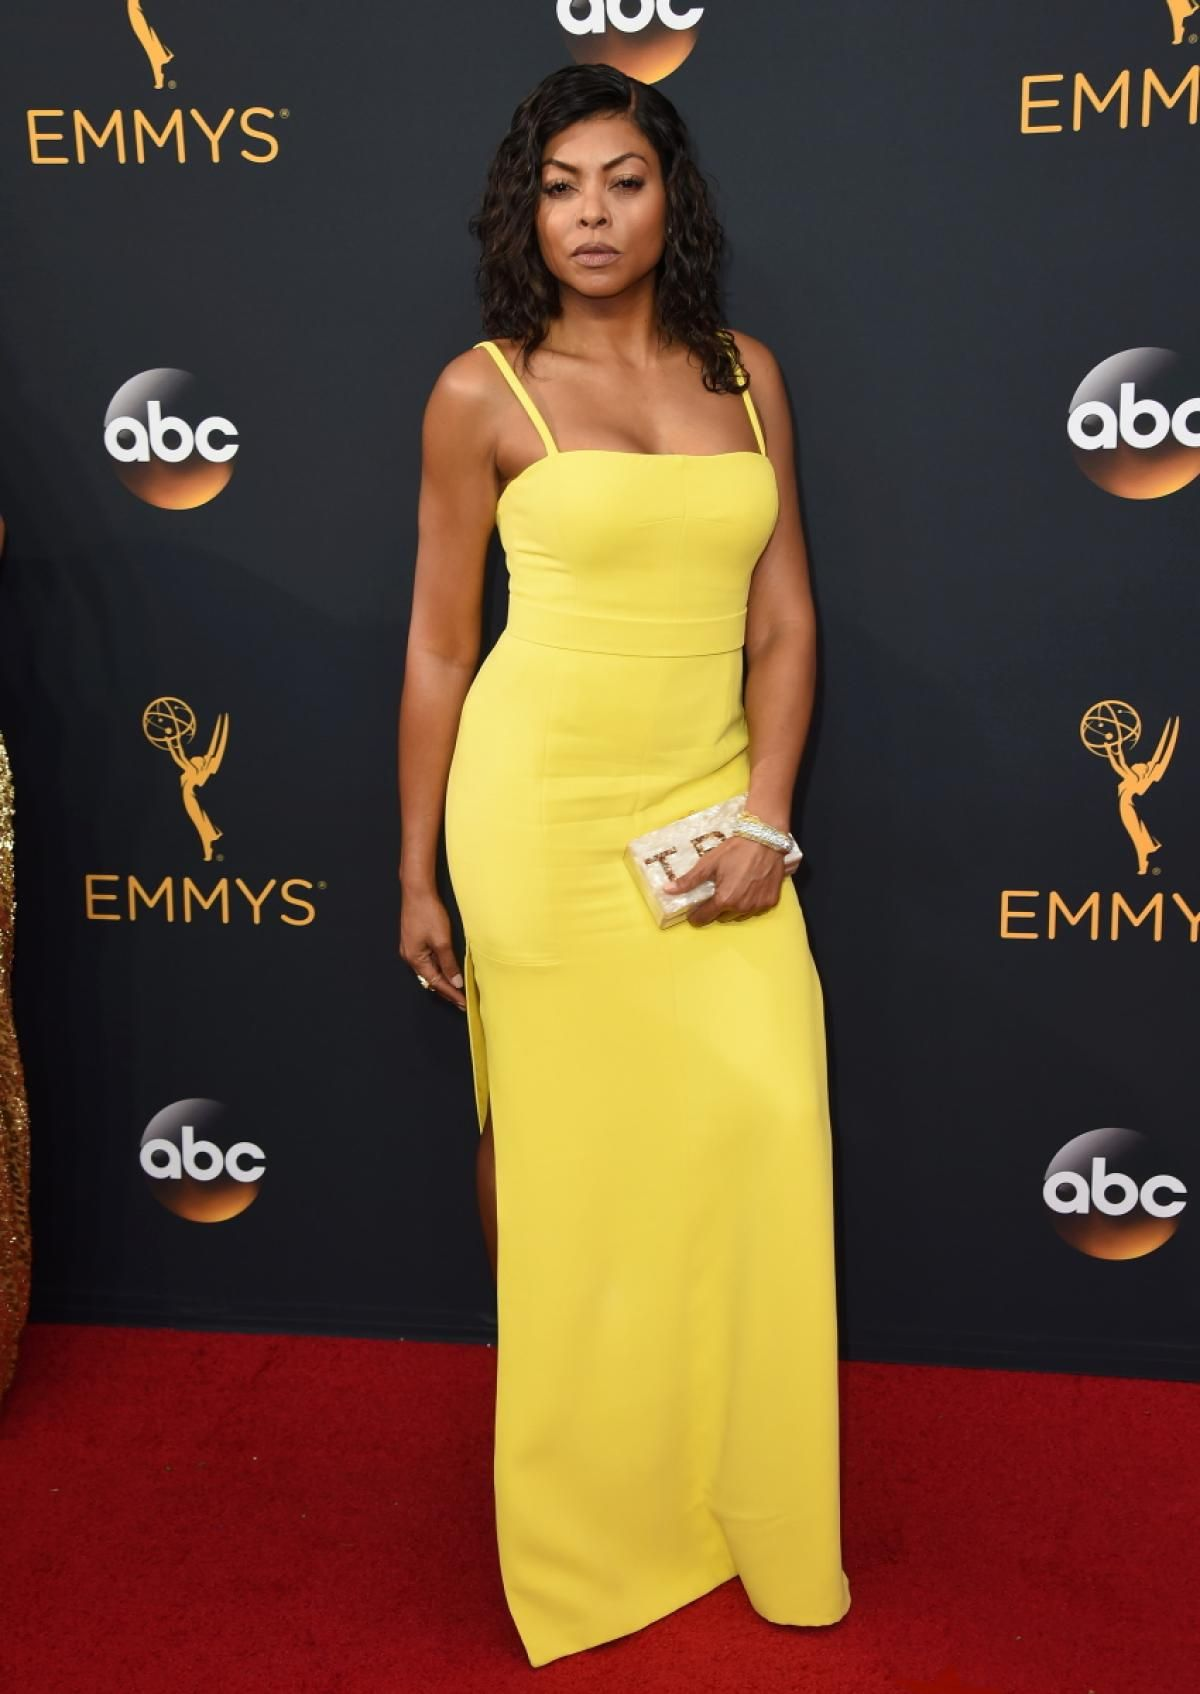 cd478e491949 Taraji P. Henson donned a bright yellow dress on the red carpet at the 68th  Primetime Emmy Awards.